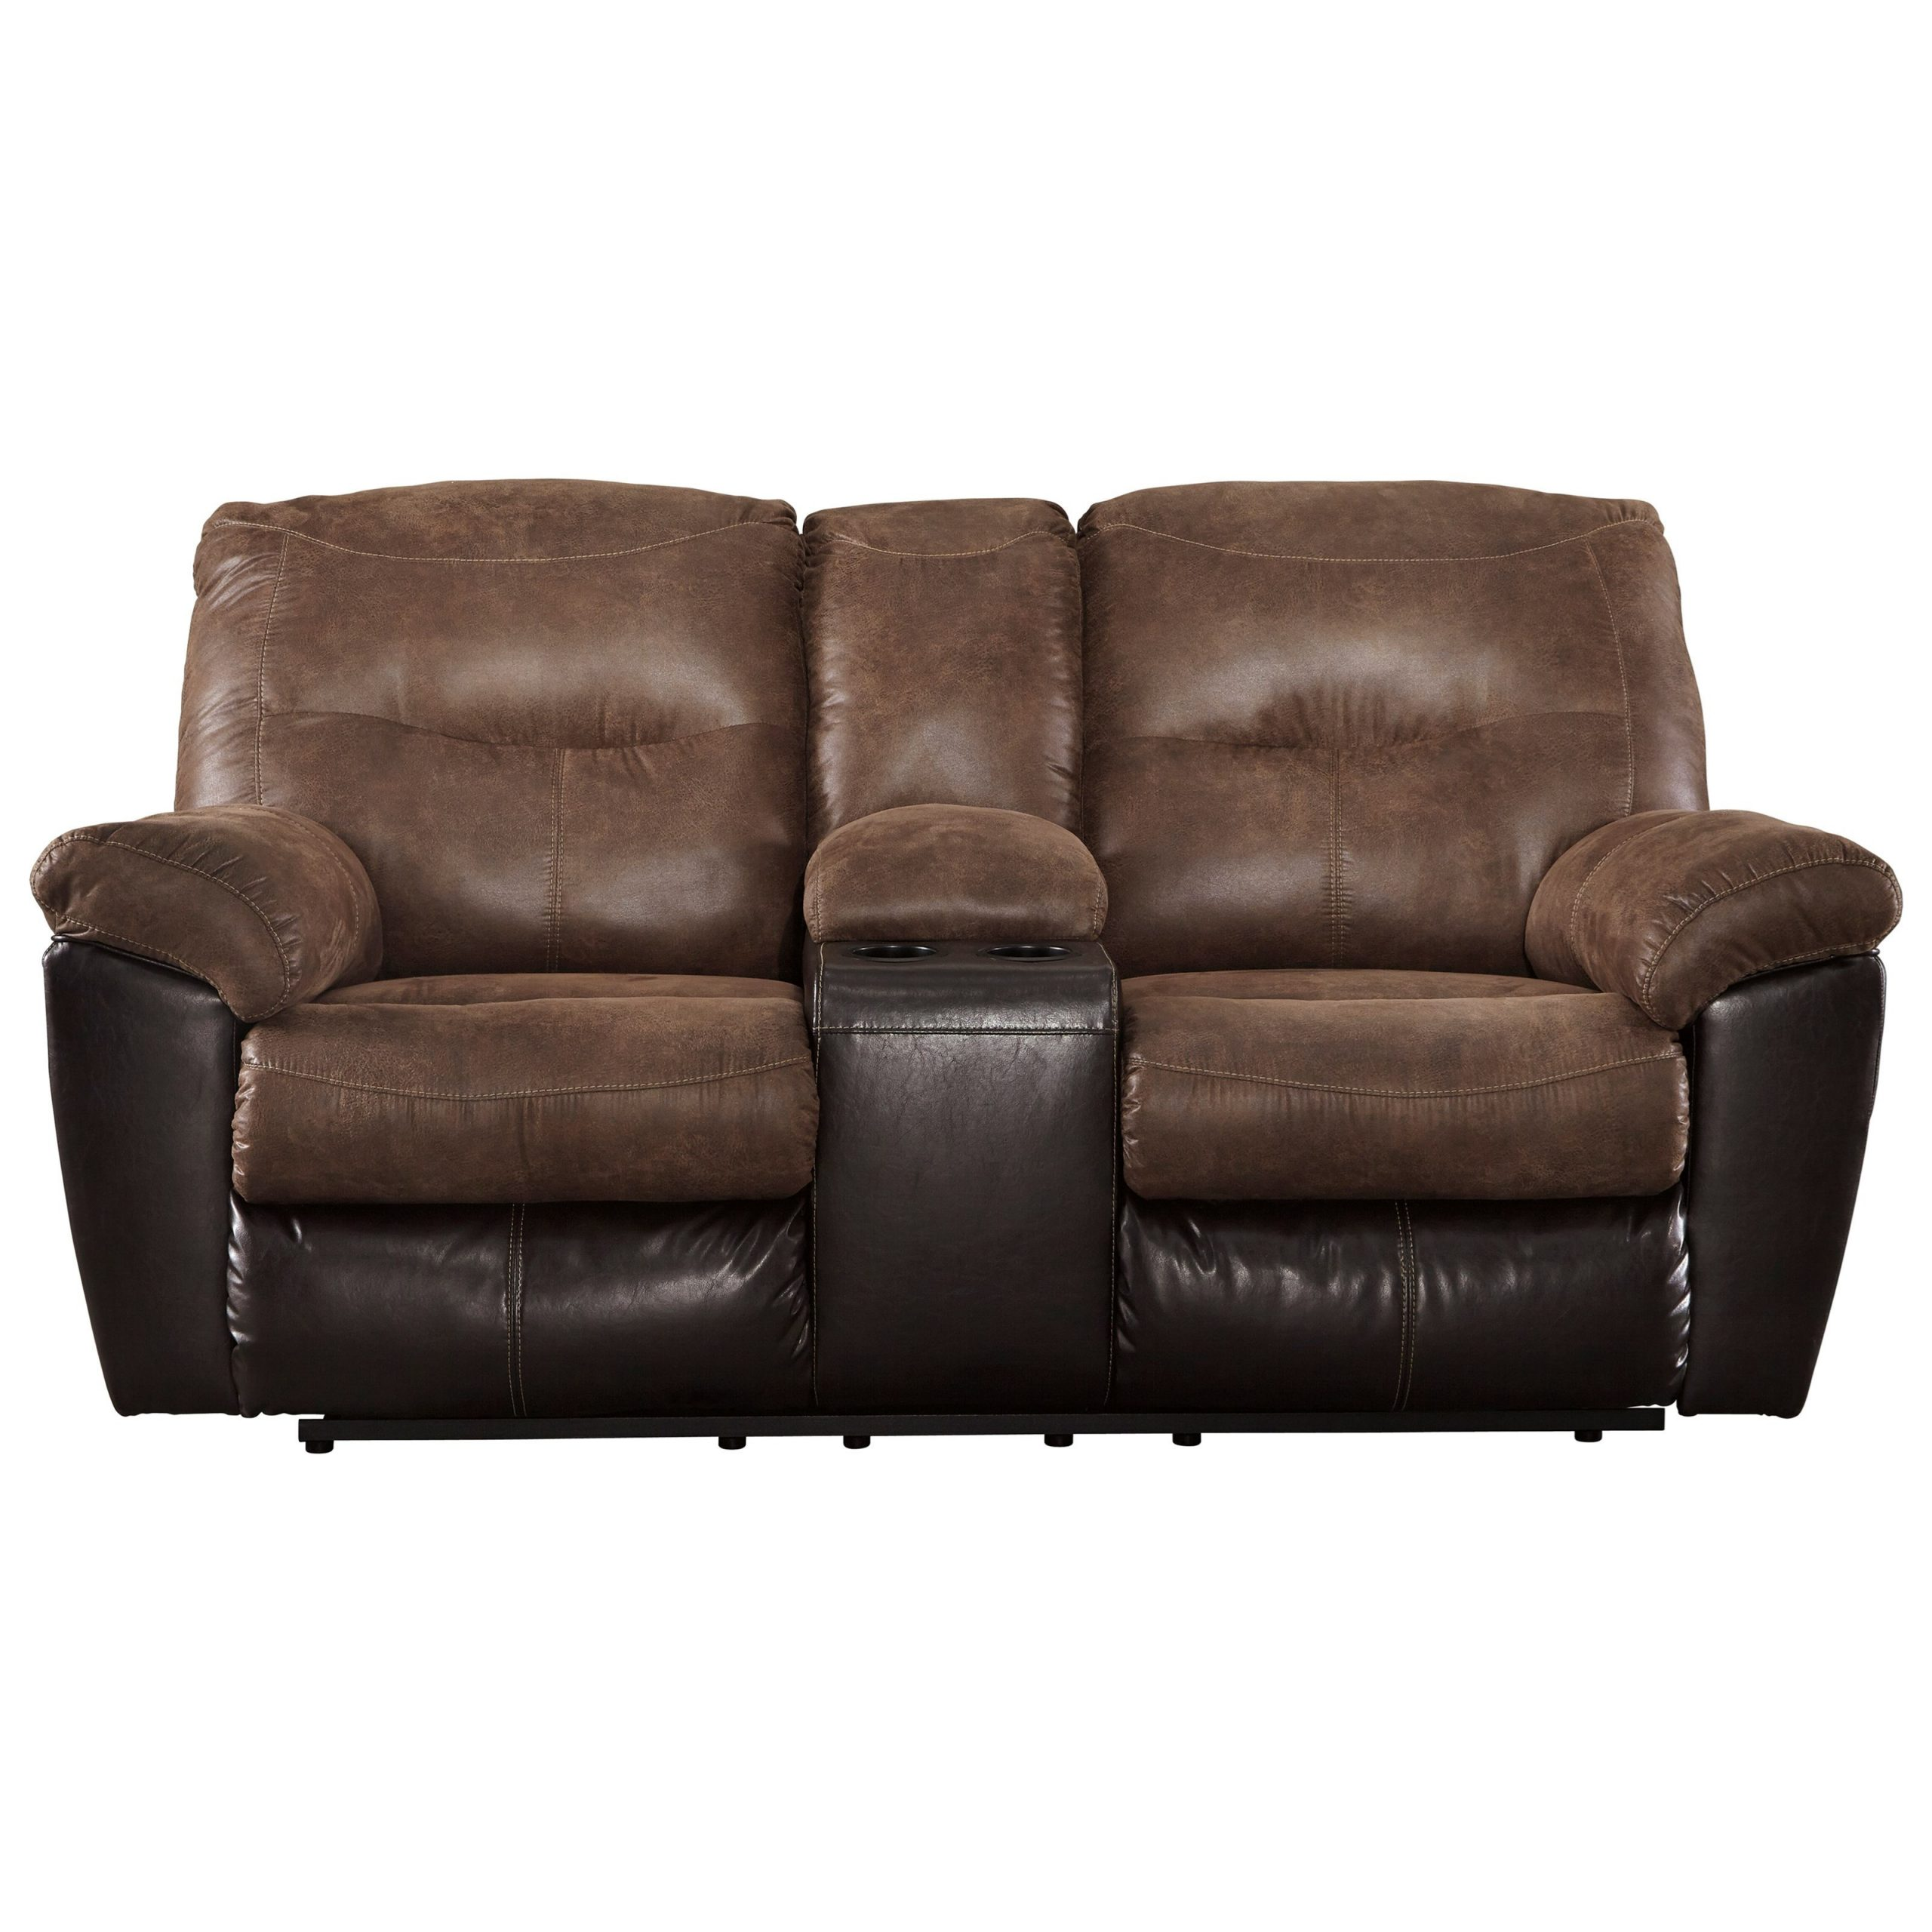 Signature Designashley Follett Two Tone Faux Leather With Regard To Lannister Dual Power Reclining Sofas (View 1 of 7)